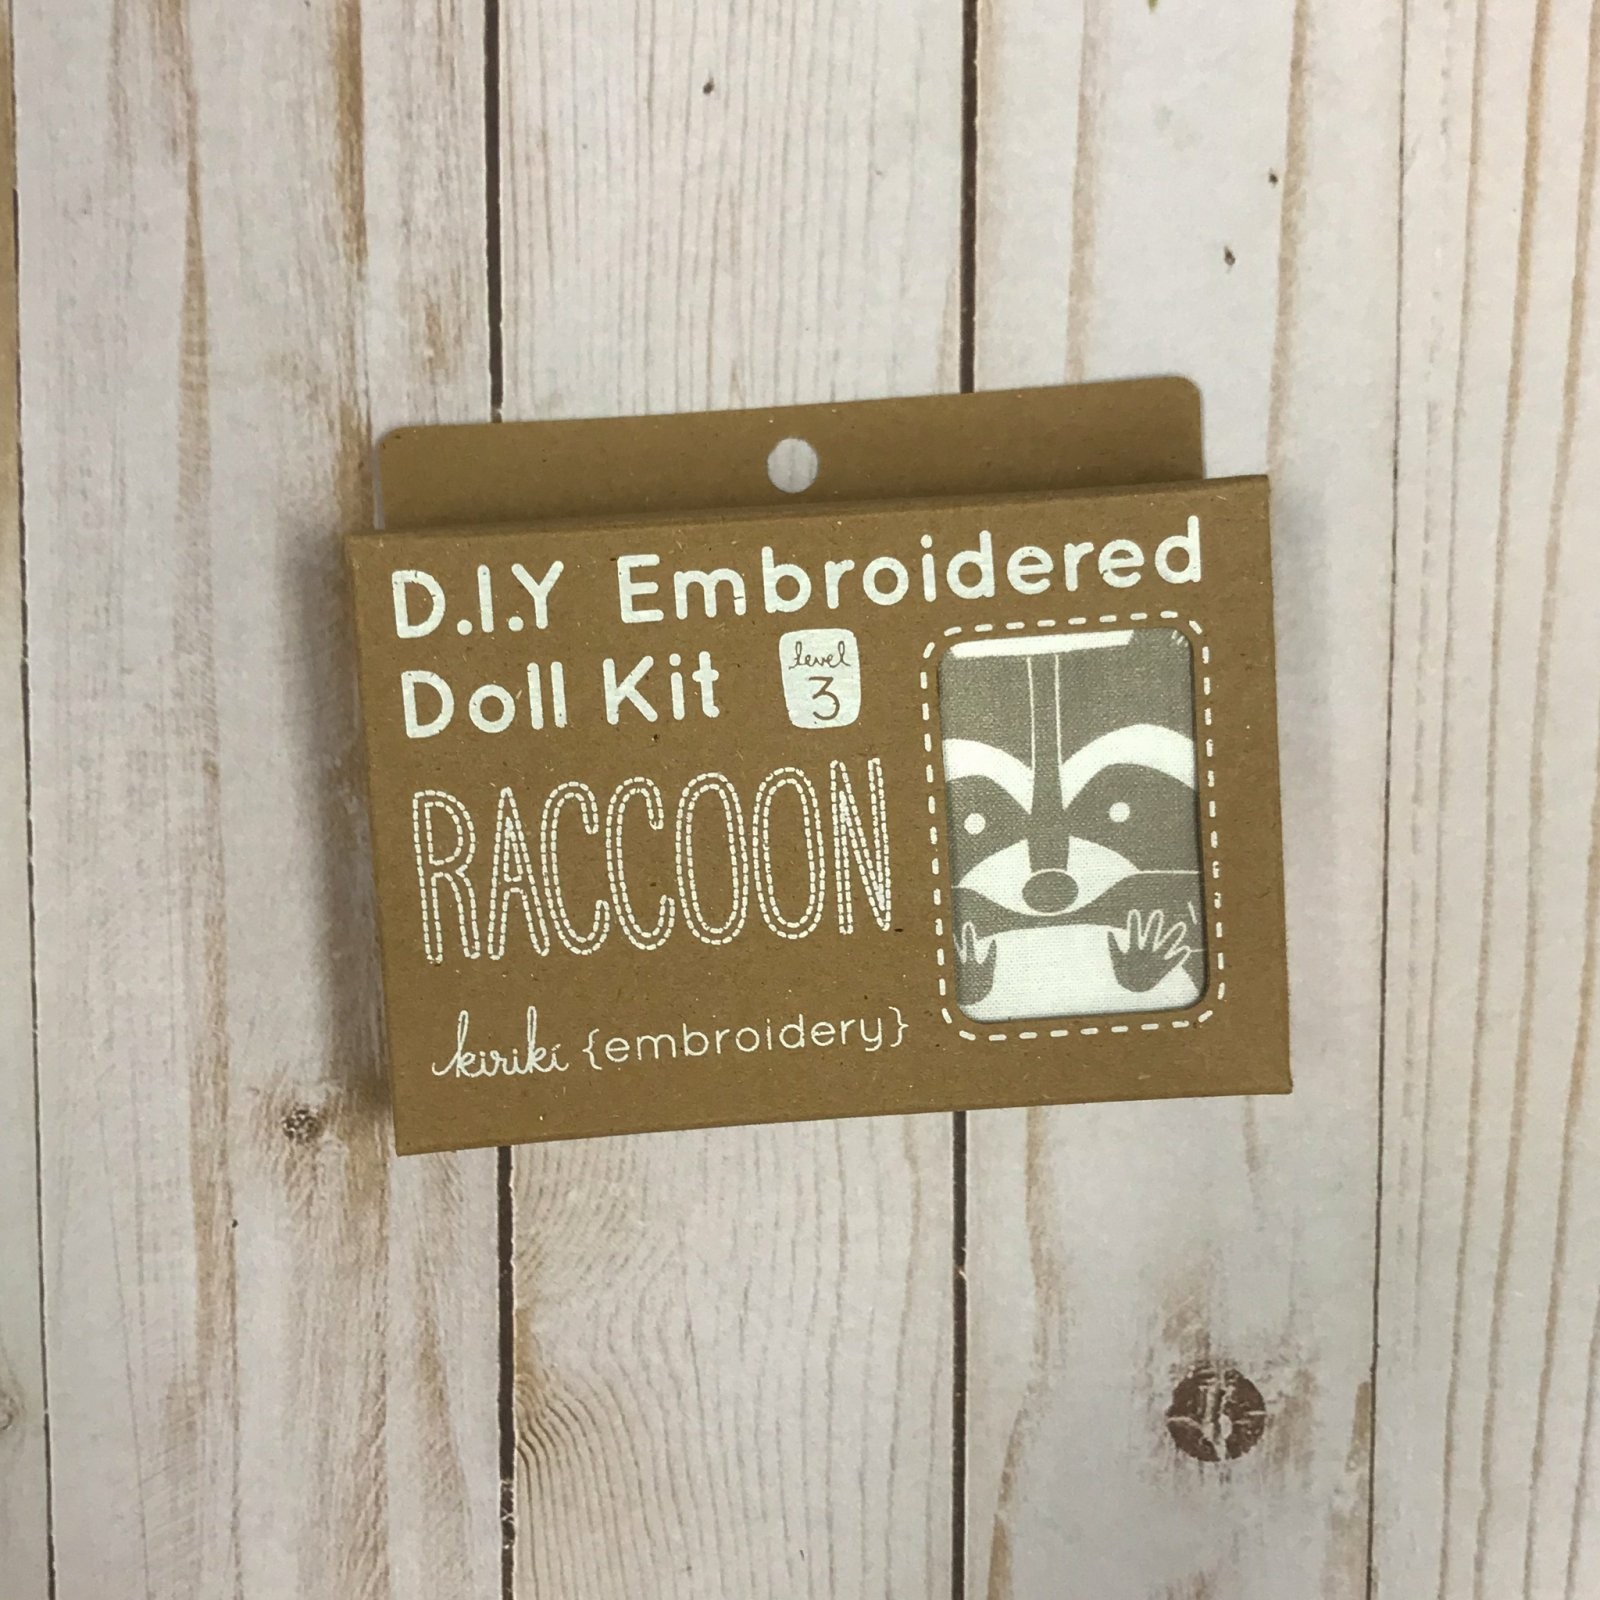 Embroidered Doll Kit - Level 3 - Raccoon